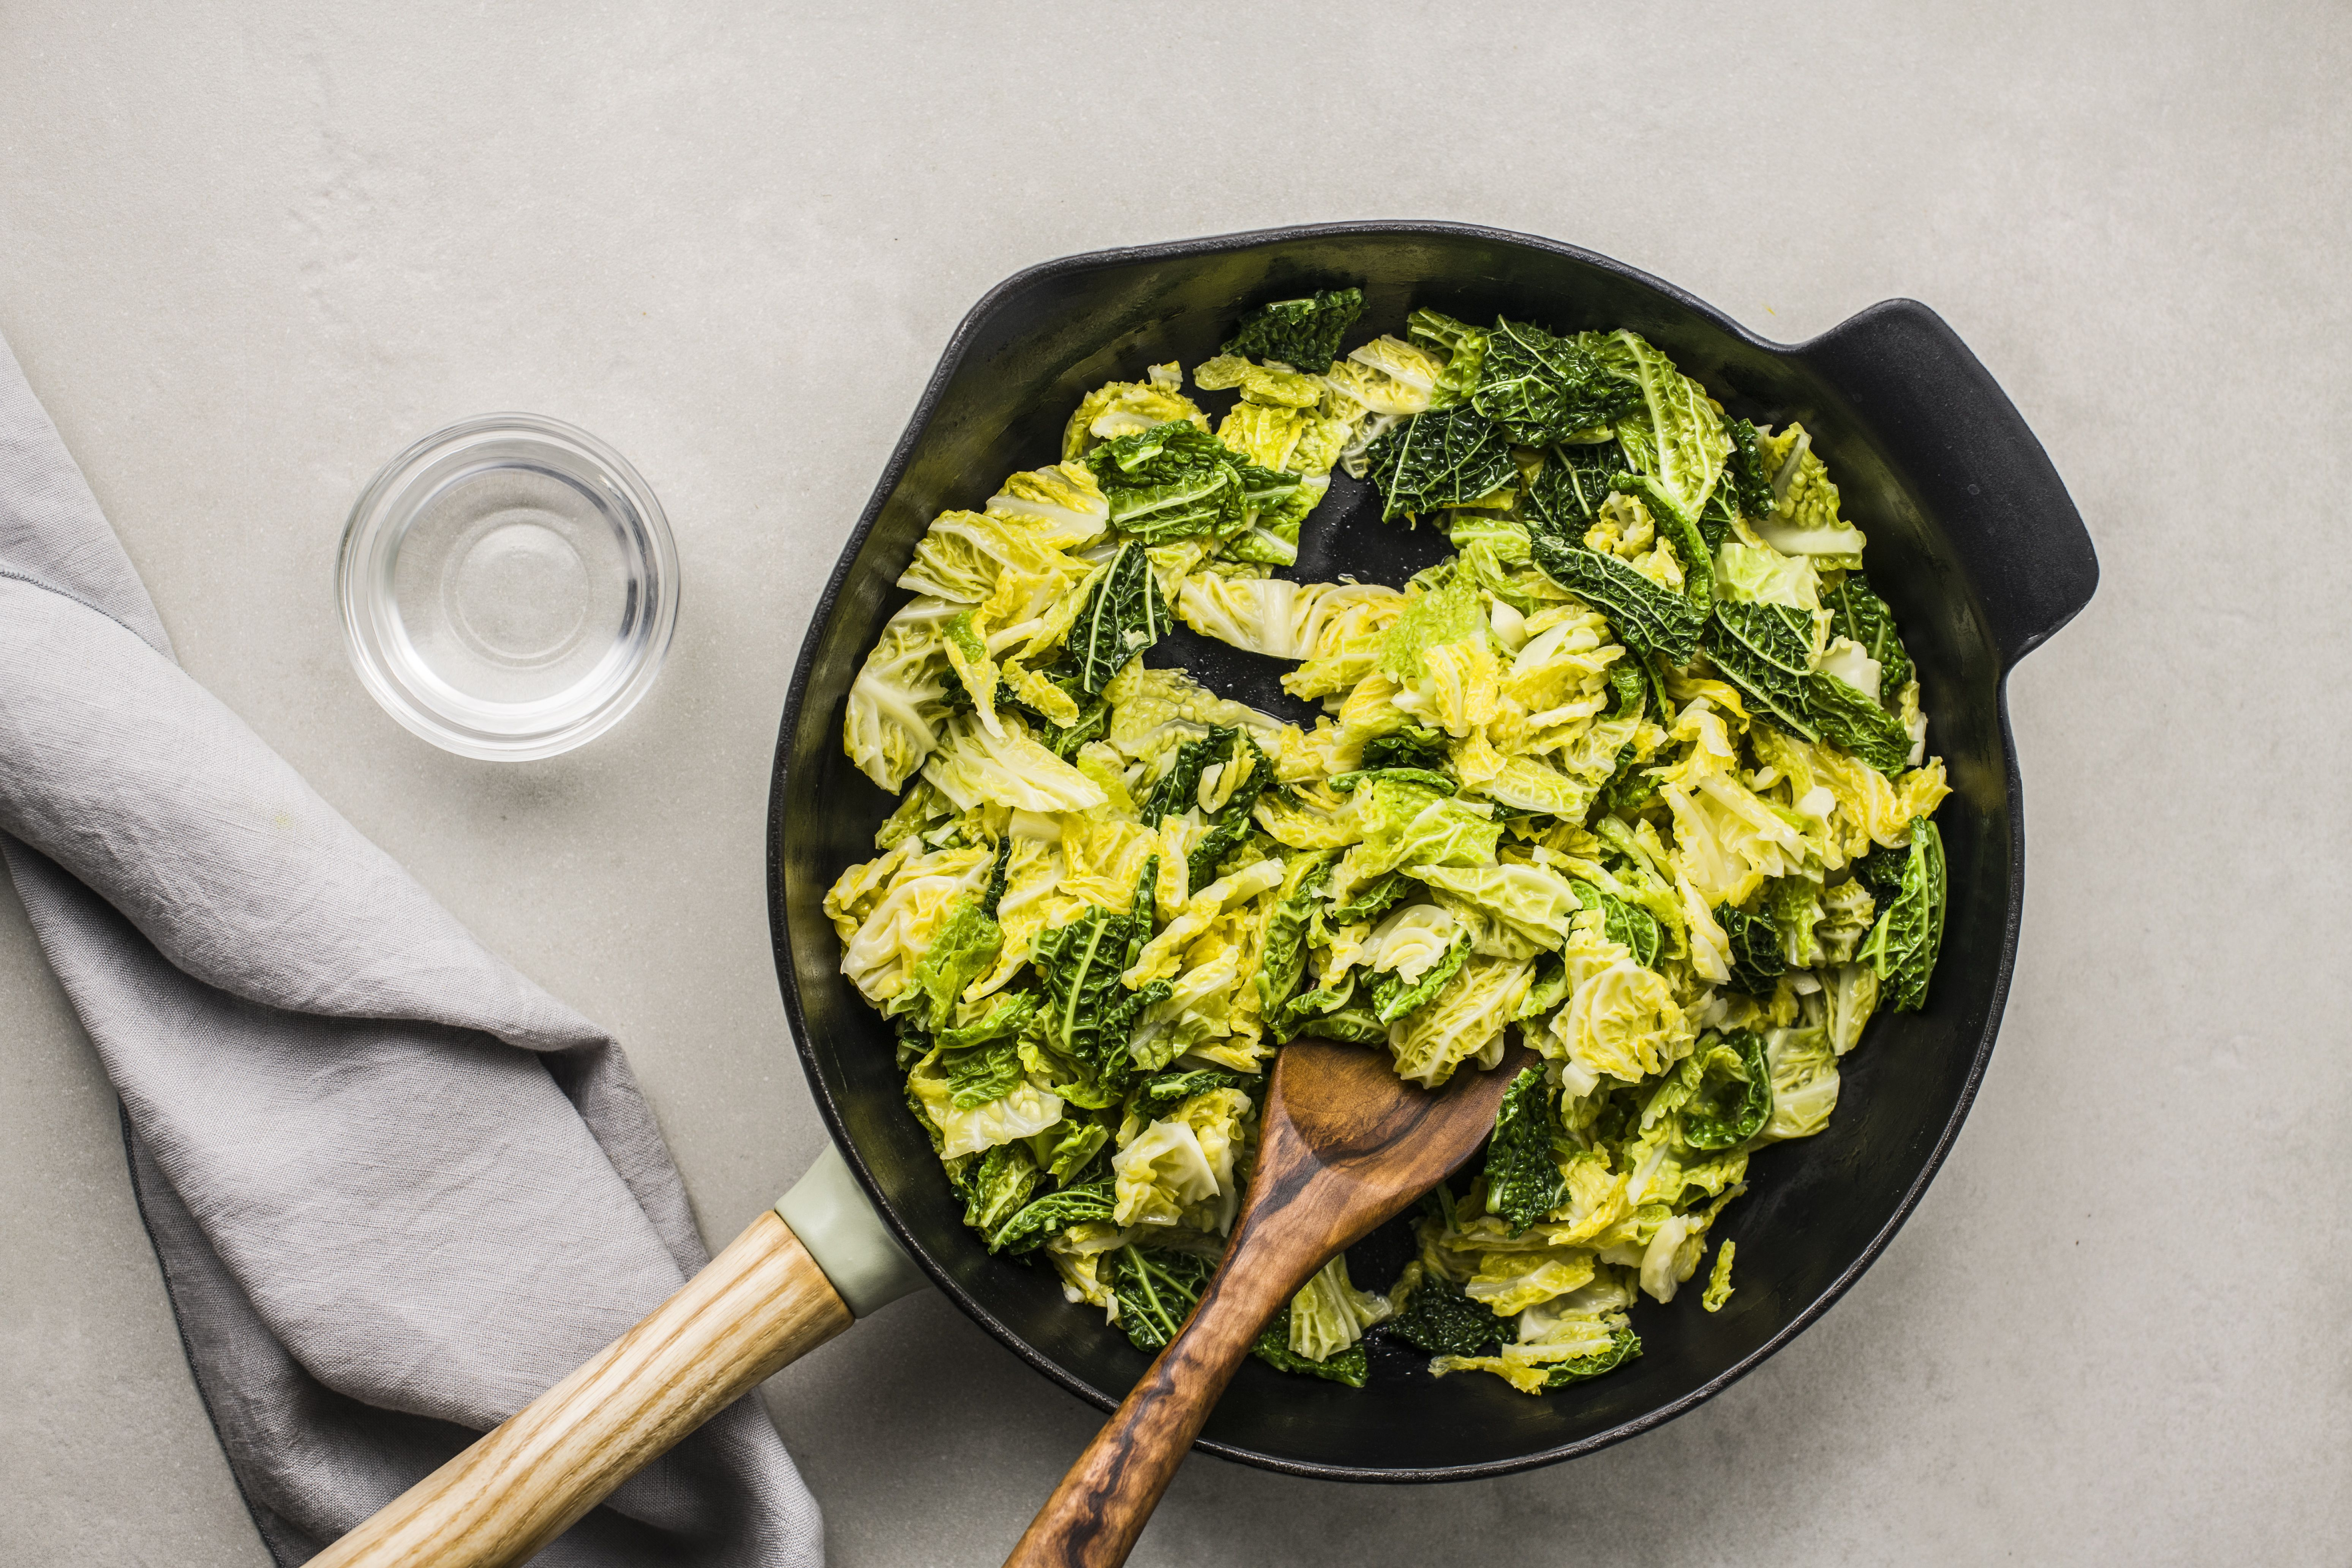 Adding water and stirring cabbage with a wooden spoon